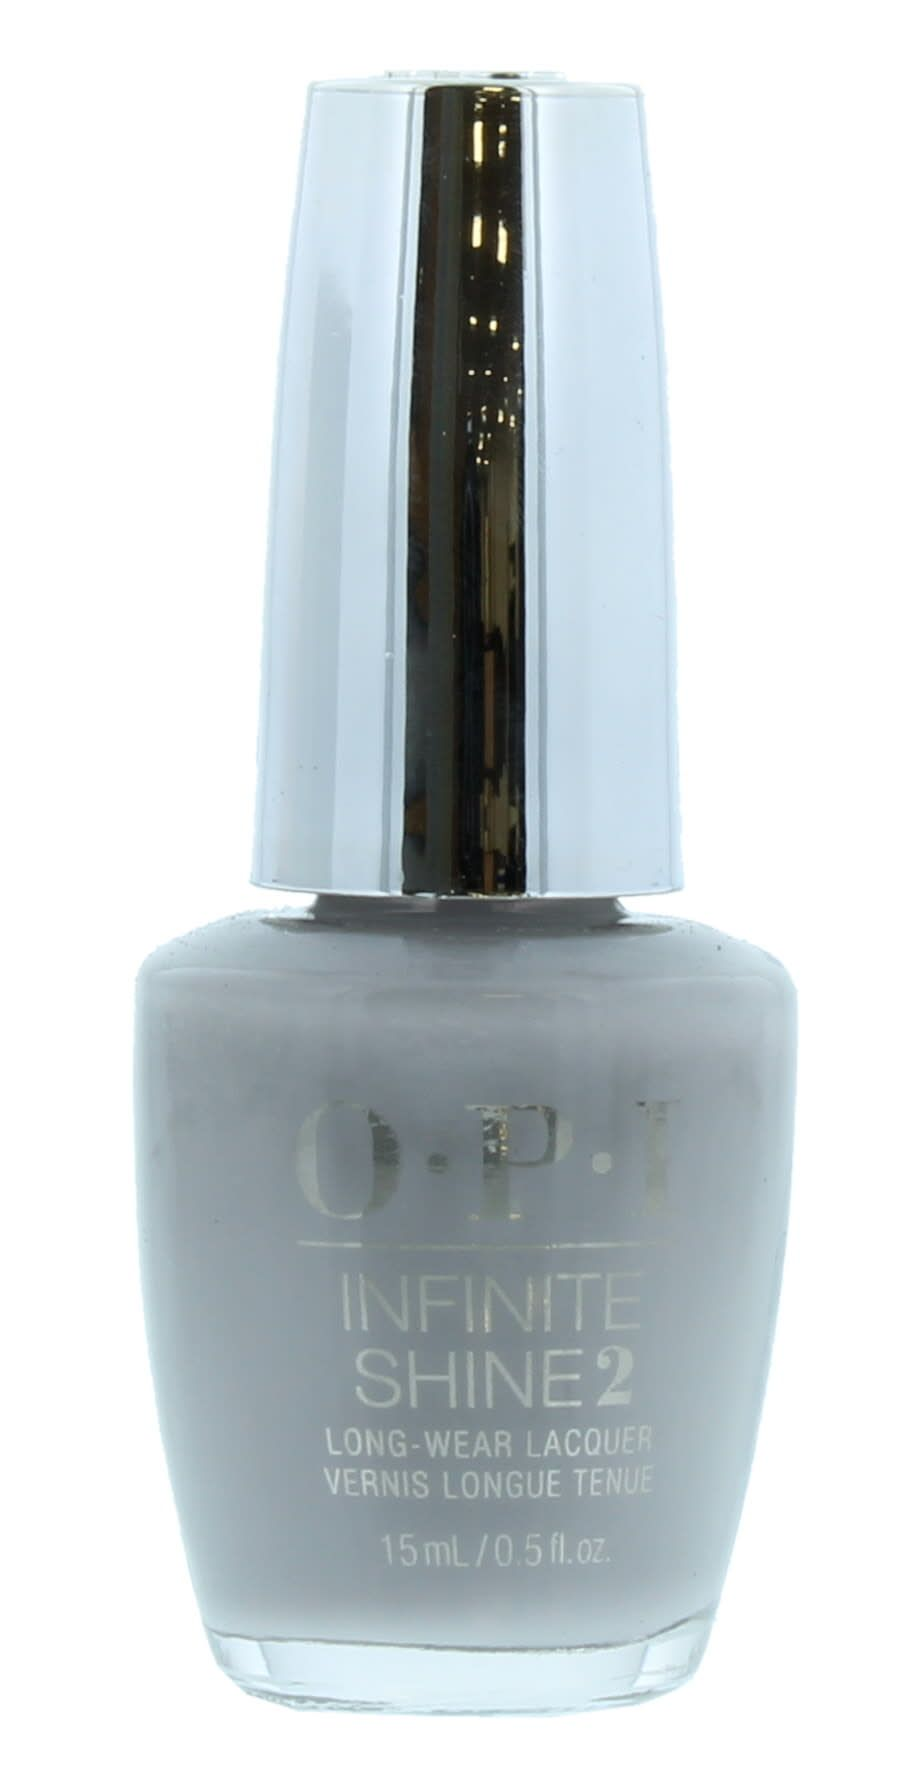 OPI Infinite Shine2 Long-Wear Lacquer 15ml - Engagement To Be